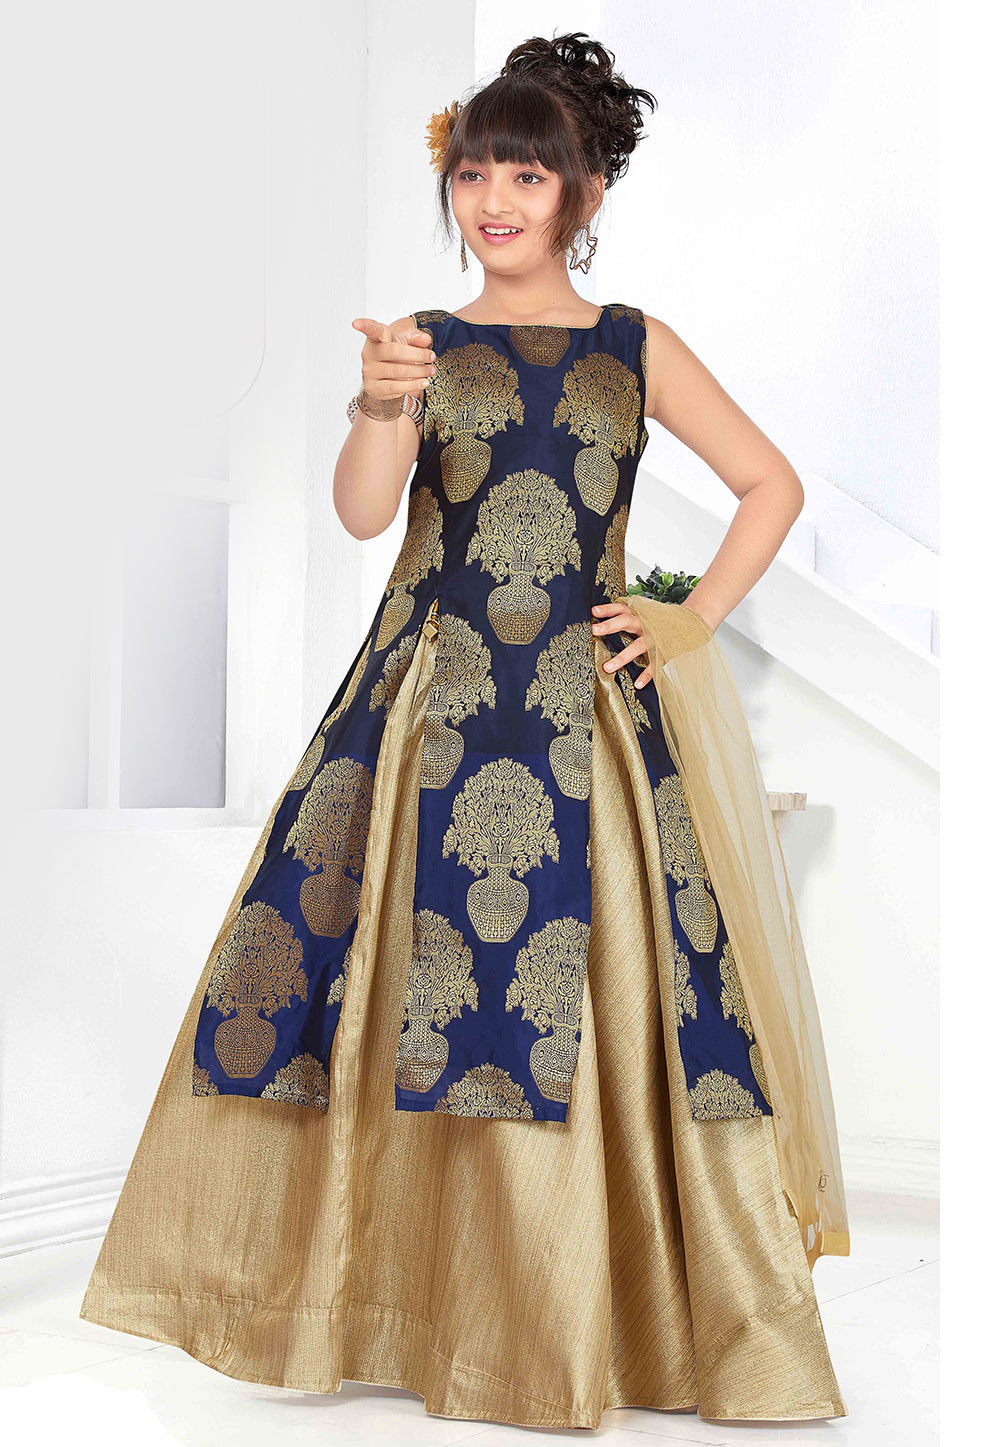 2f0fa1419d1 Indian Kidswear: Buy Ethnic Dresses and Clothing for Boys & Girls